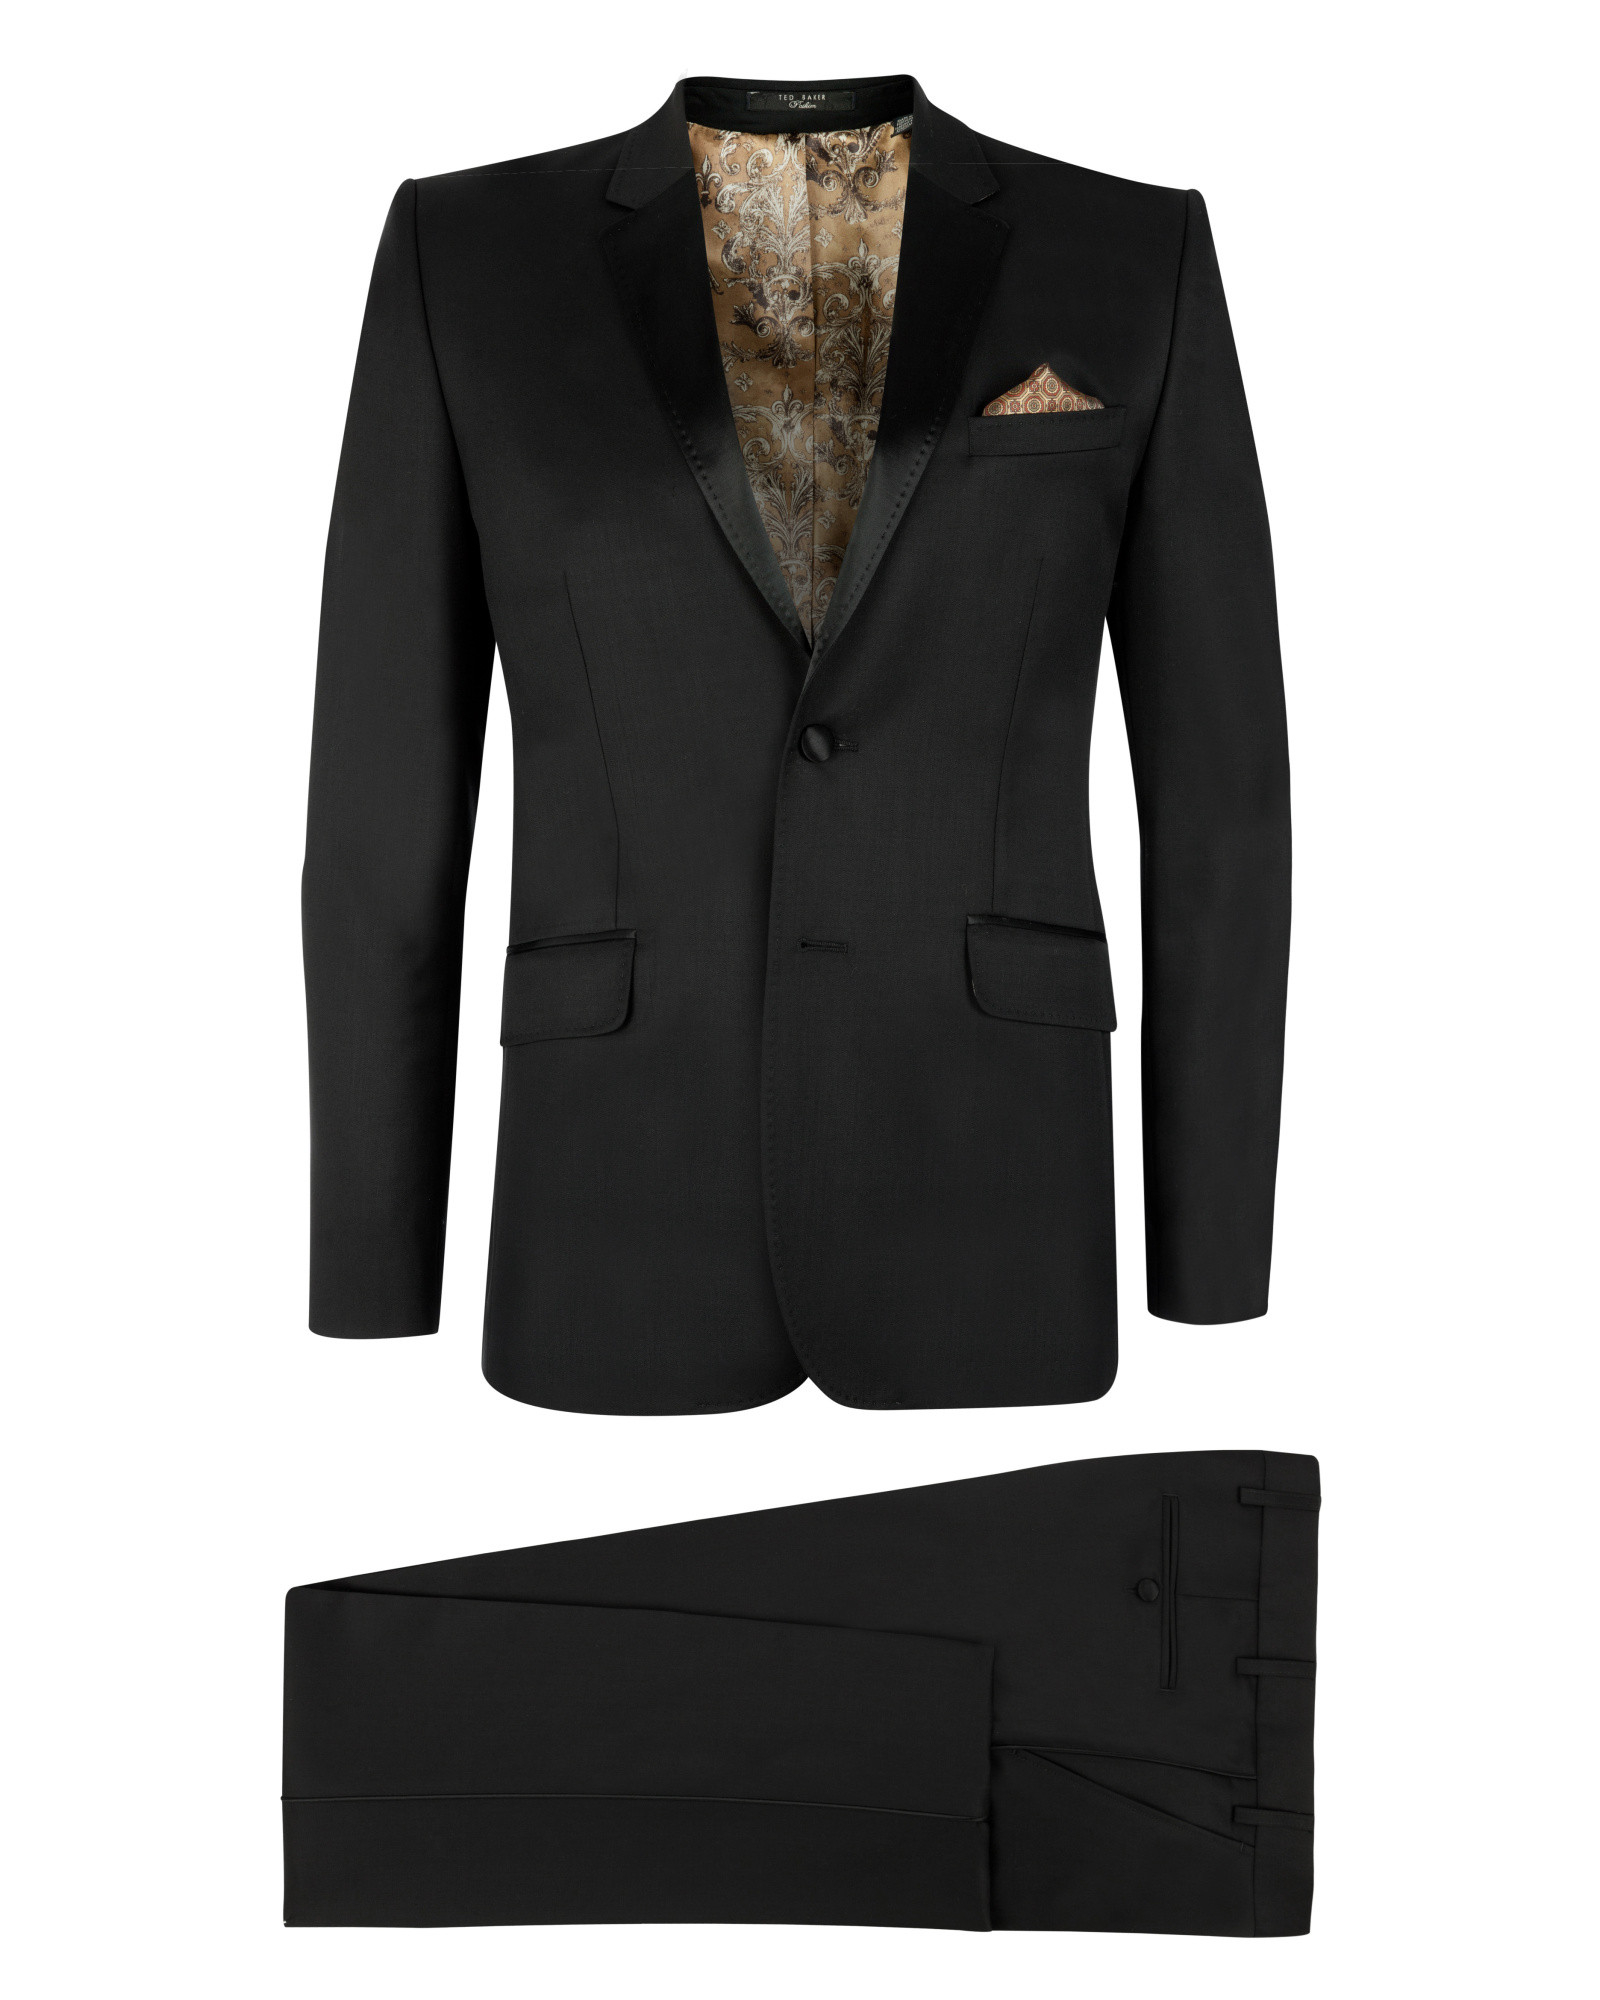 black wool wool, rusticzcountrysstylexhomedecor.tk is an online store offering some of the best Mens Suits, Tuxedos, Discount Zoot Suits and lot more.